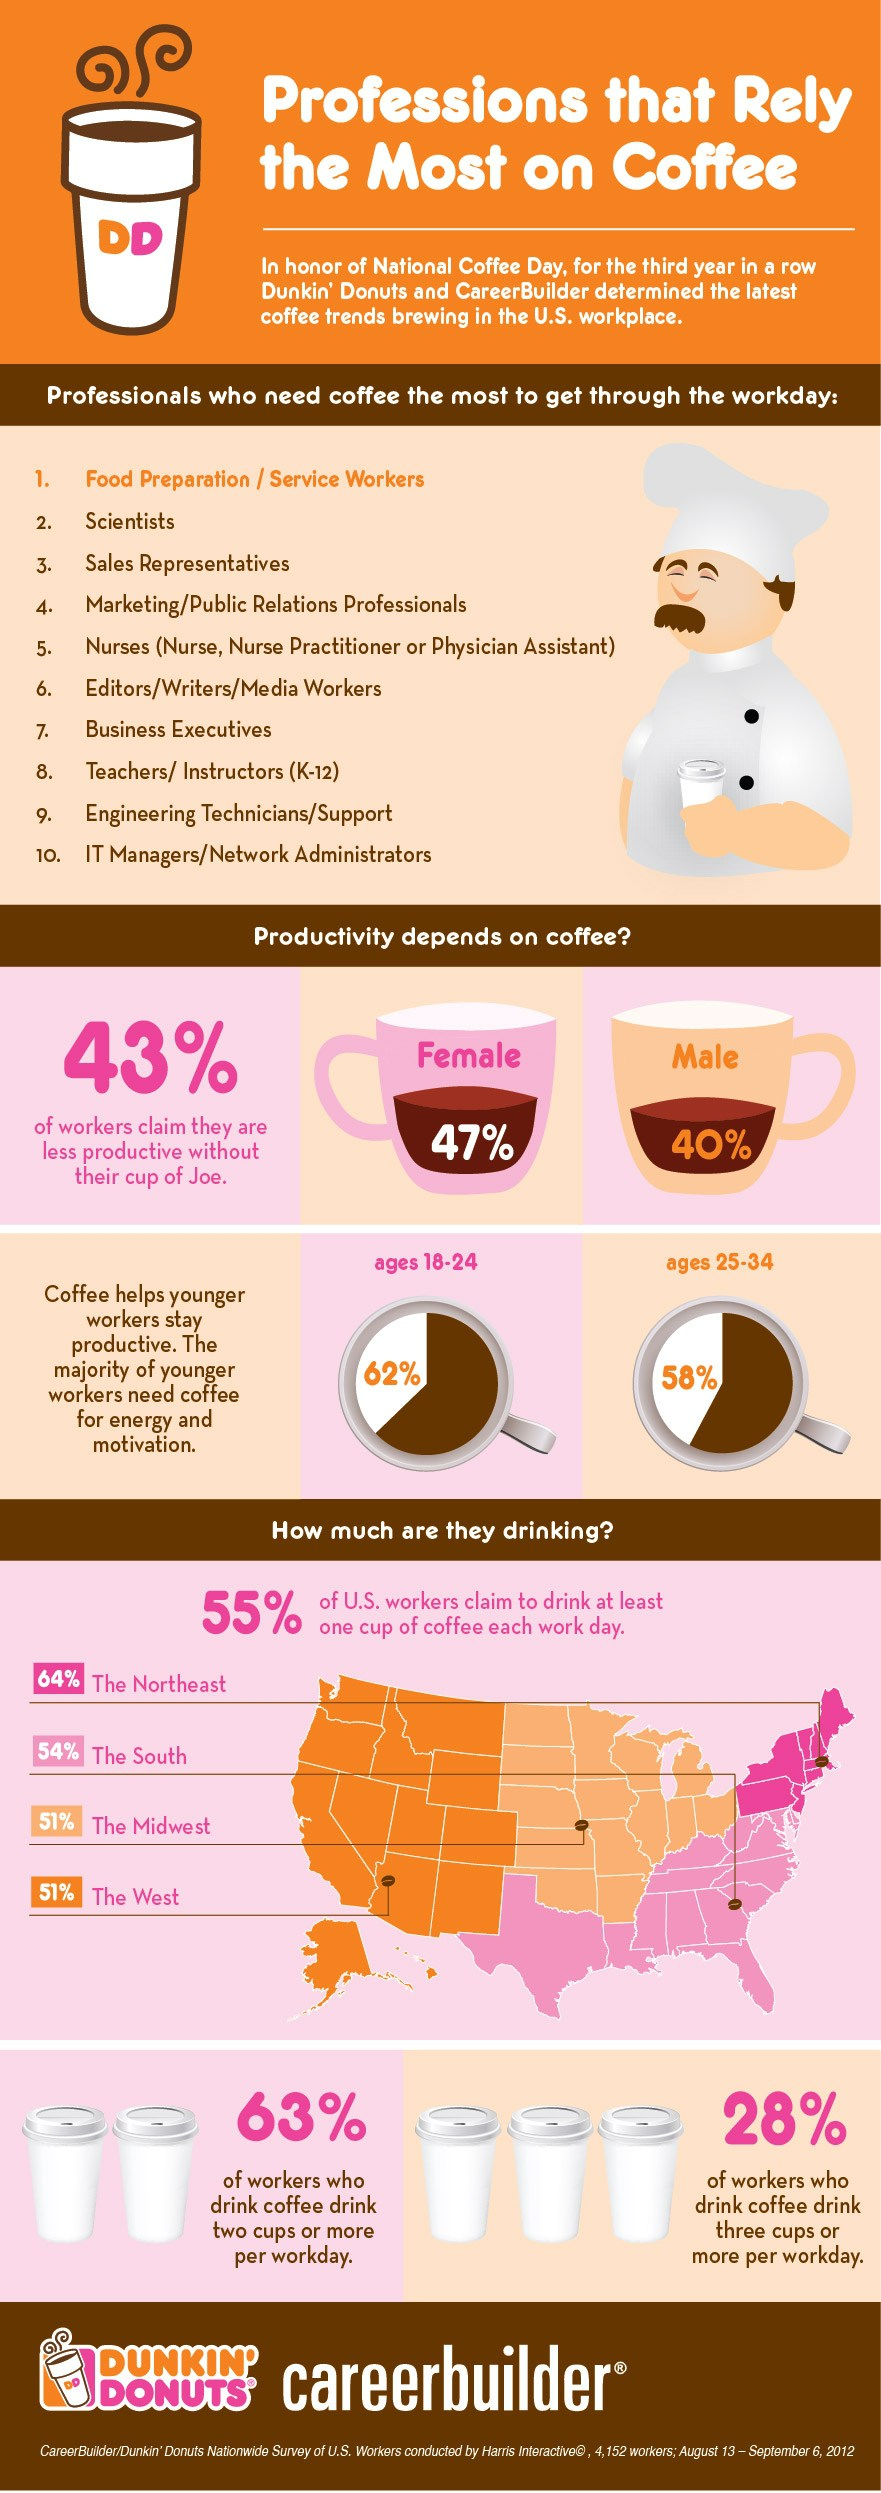 professions-that-rely-the-most-on-coffee_5065cf915785c